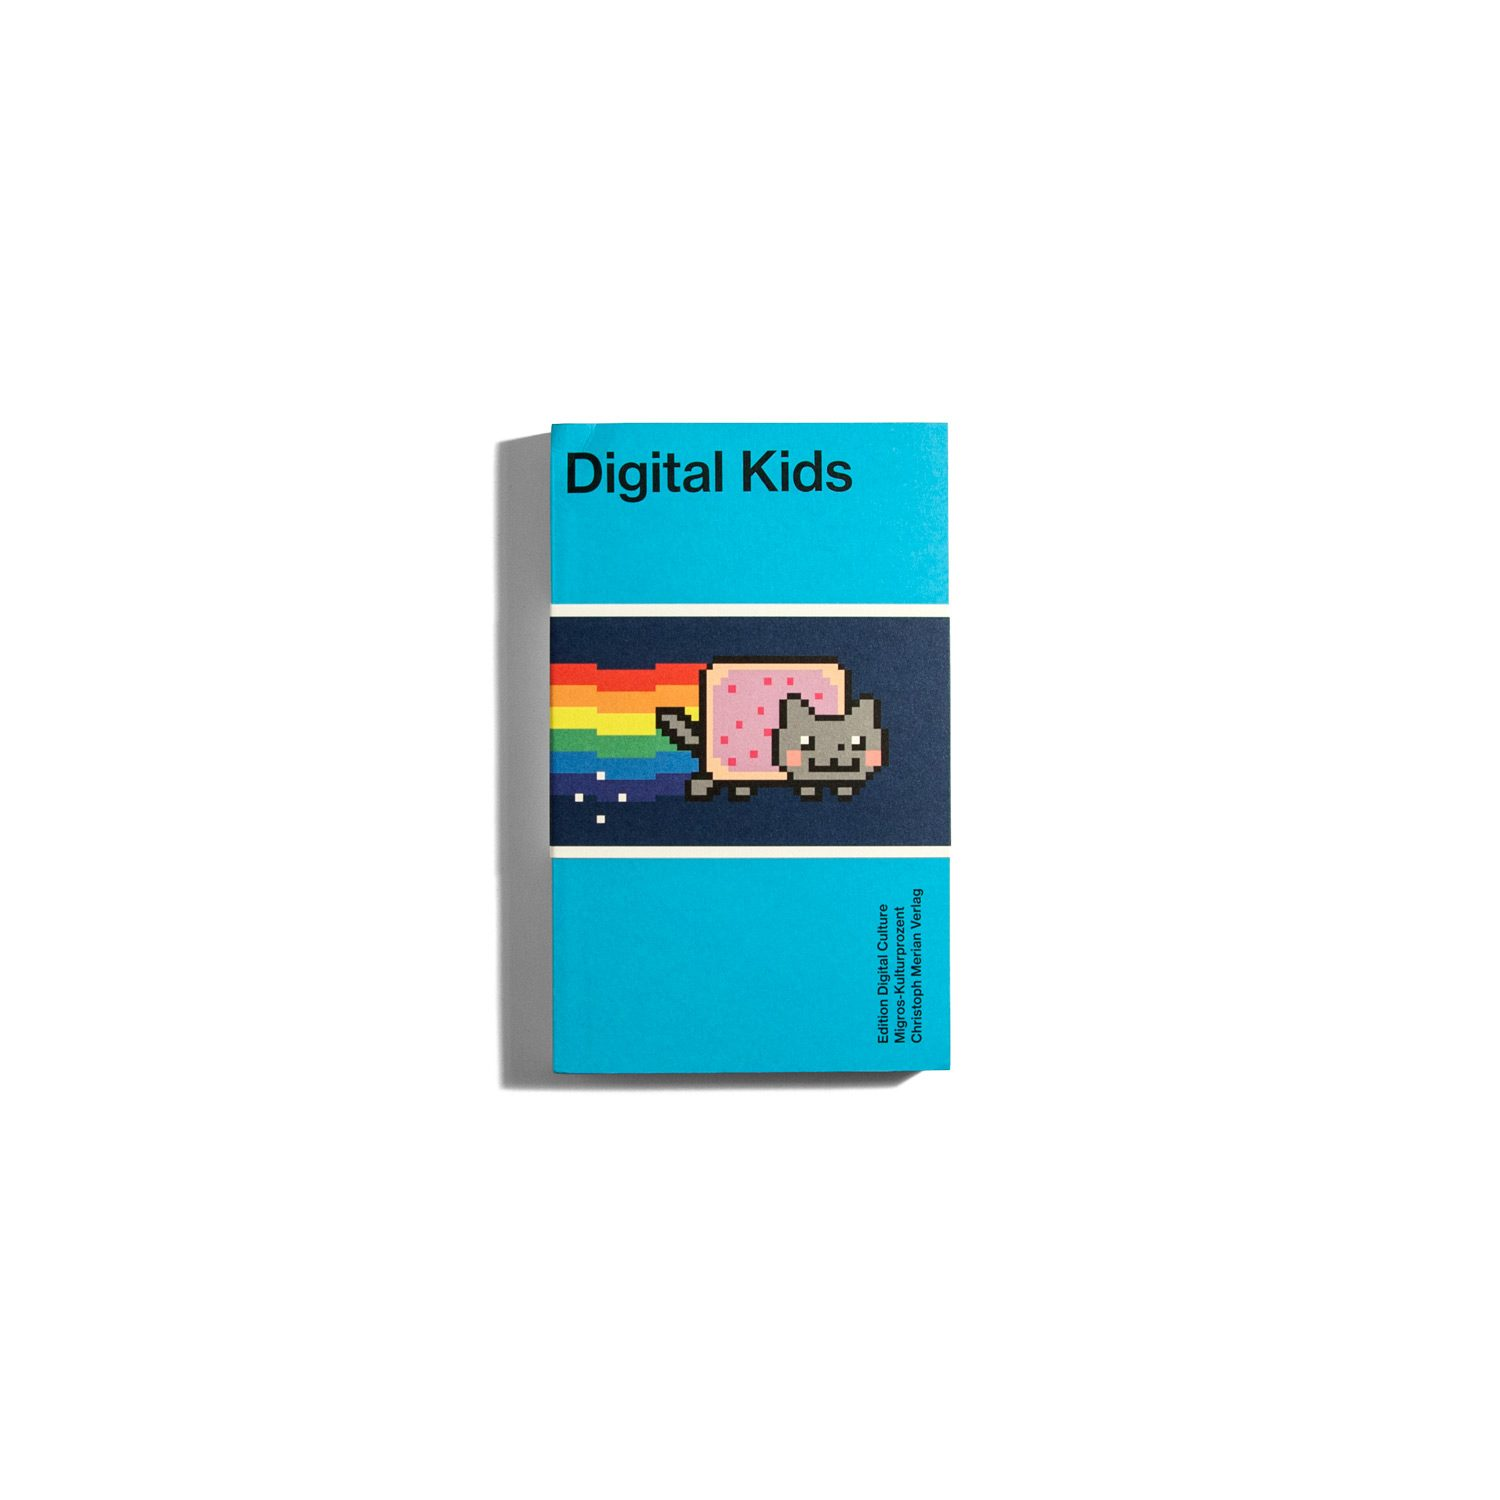 Digital Kids